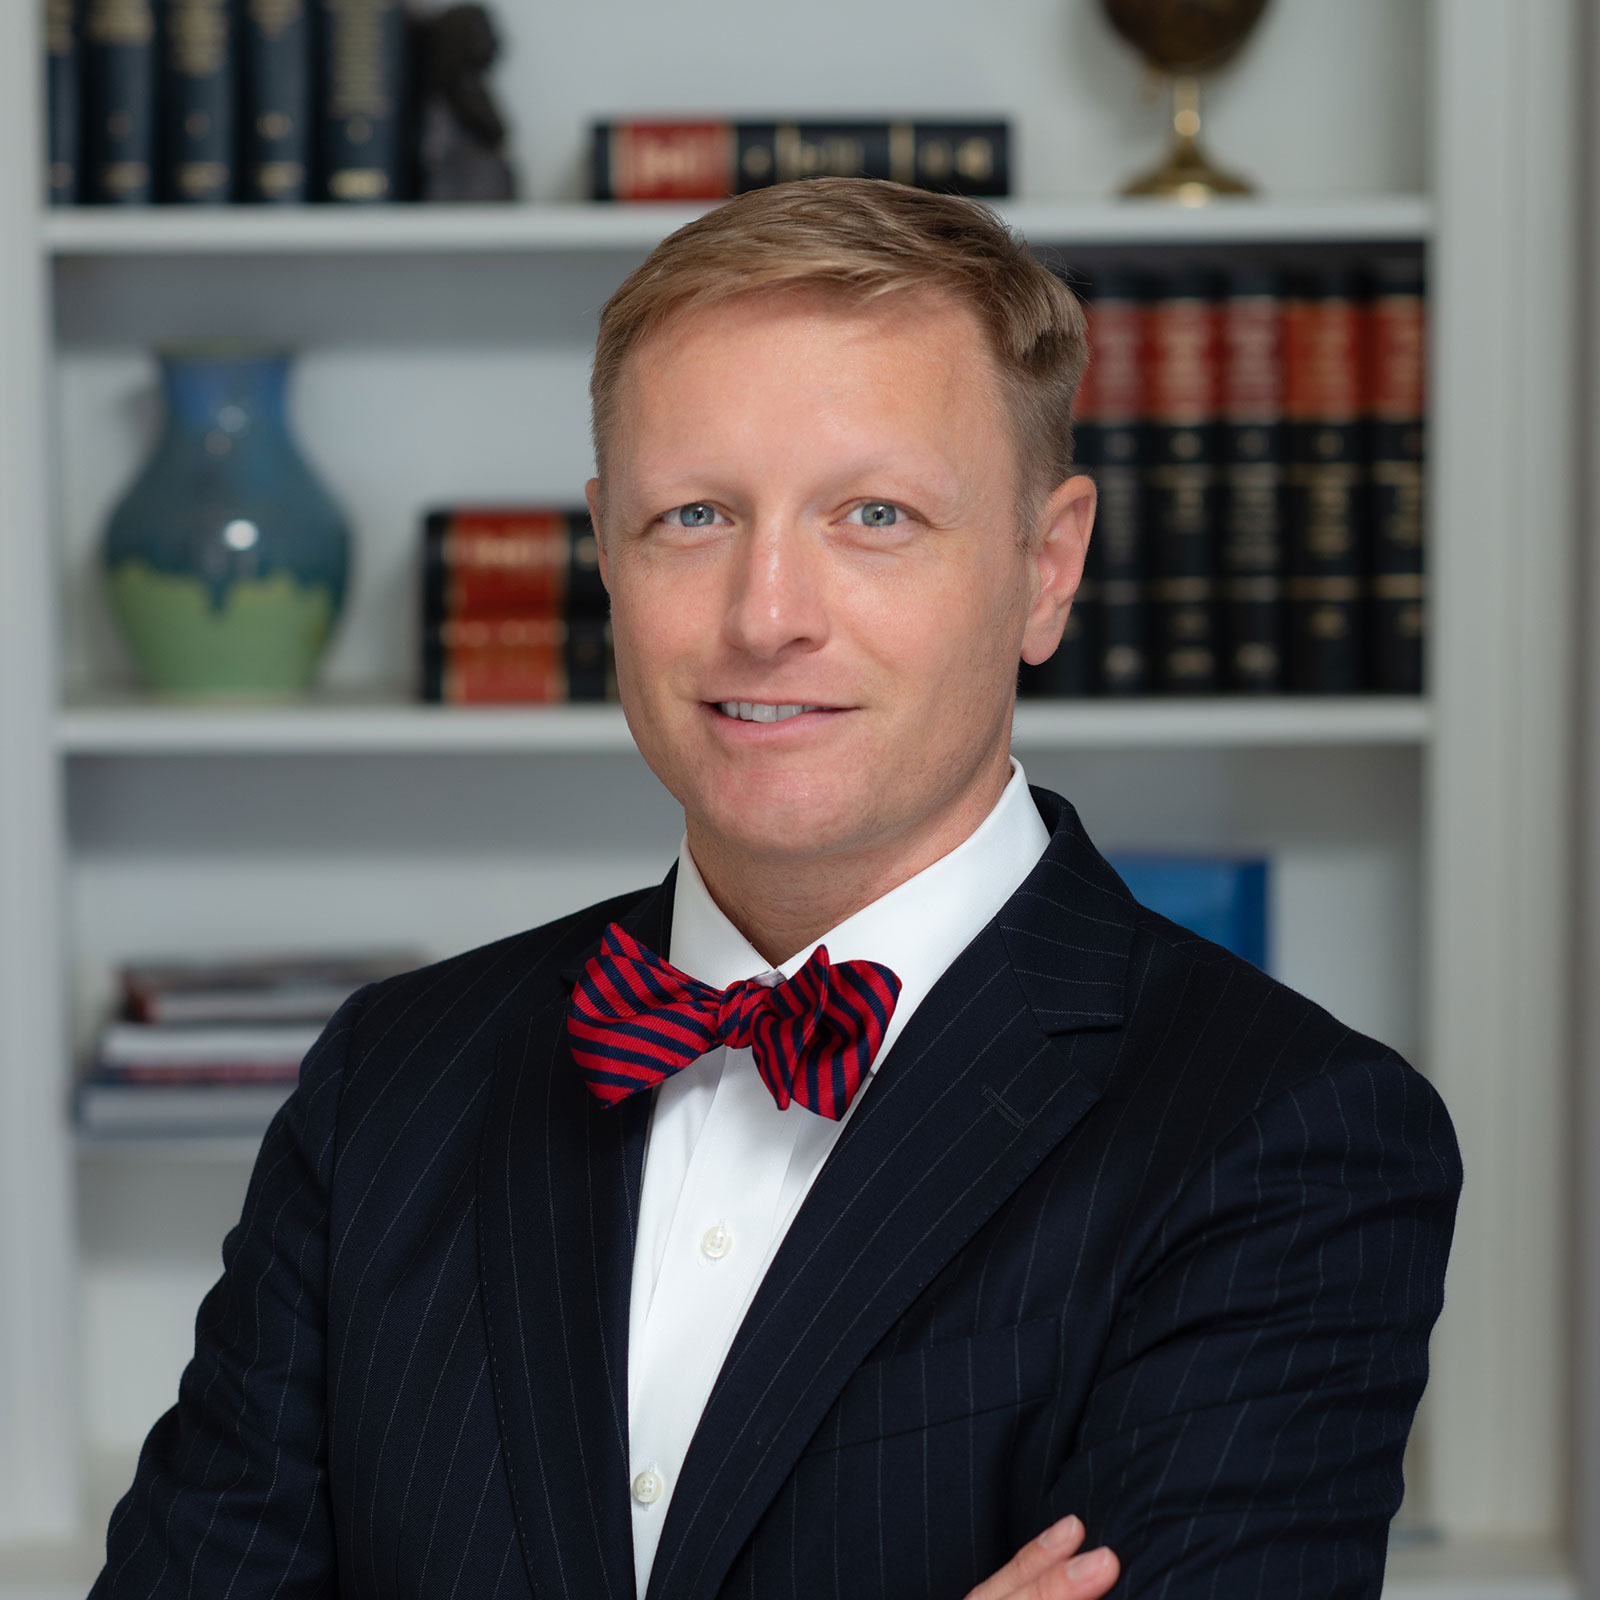 Head shot of Kyle Williams, a dirt lawyer in Atlanta, Georgia and founding partner of Williams Teusink.